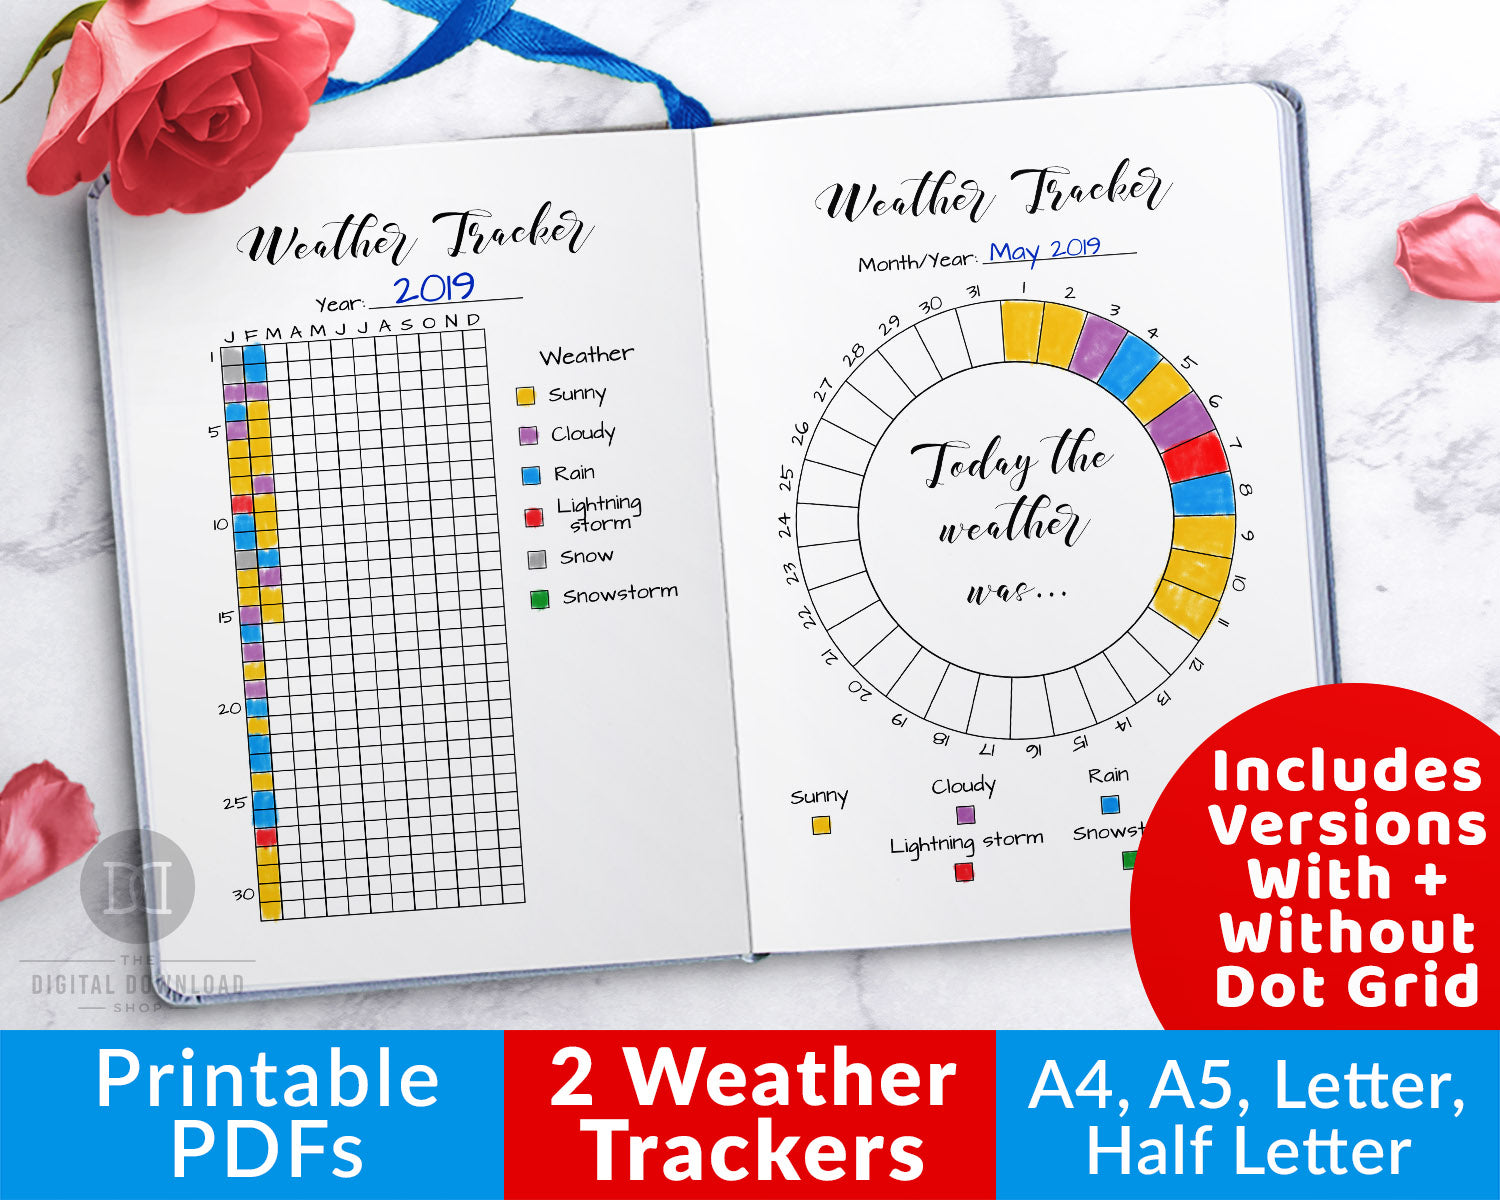 2 weather tracker printables for bullet journals and other planners- 1 circle tracker (for monthly tracking) and 1 chart tracker (for annual tracking). Use this weather tracking planner printable to keep a log of the weather in your area!